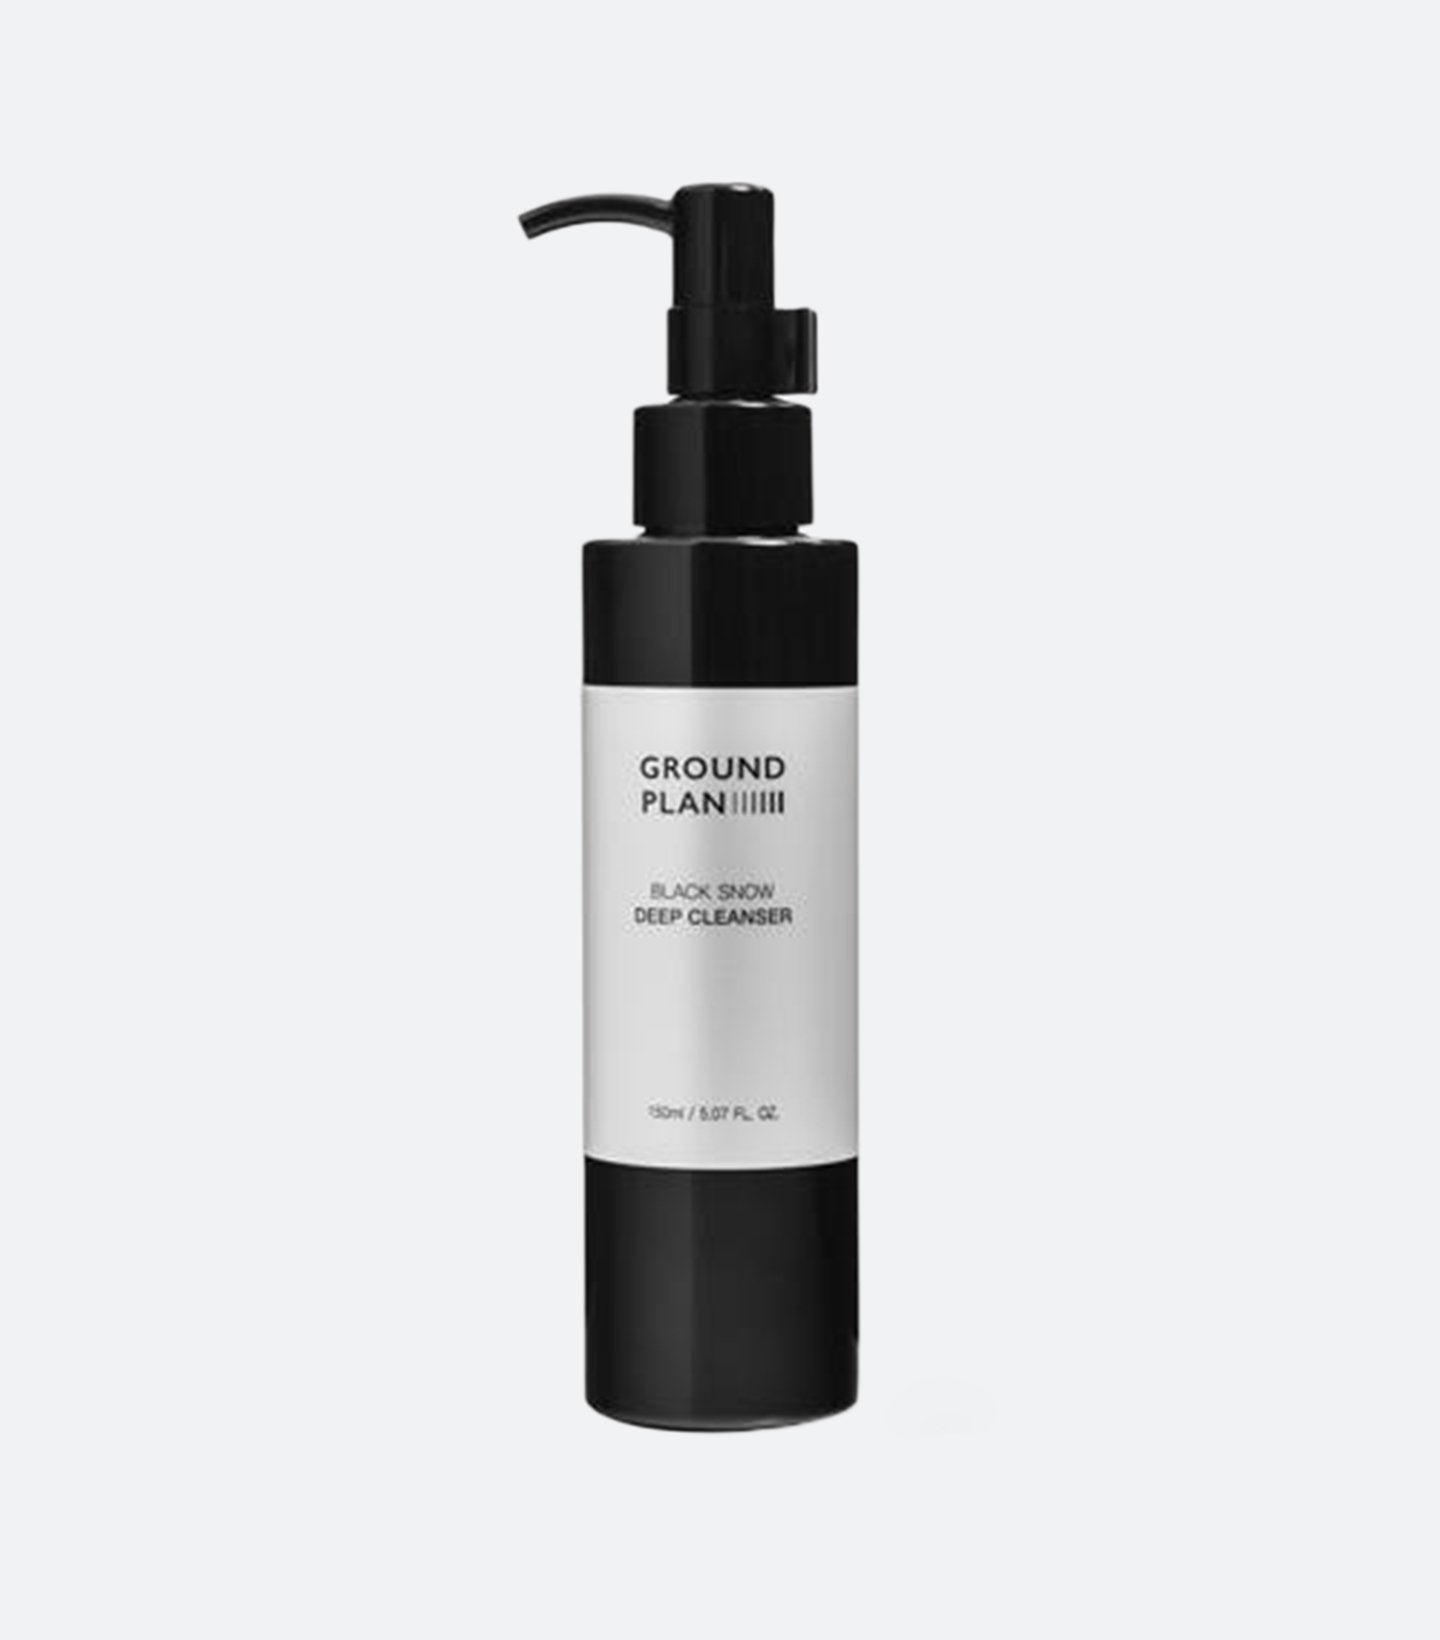 Black Snow Deep Cleanser